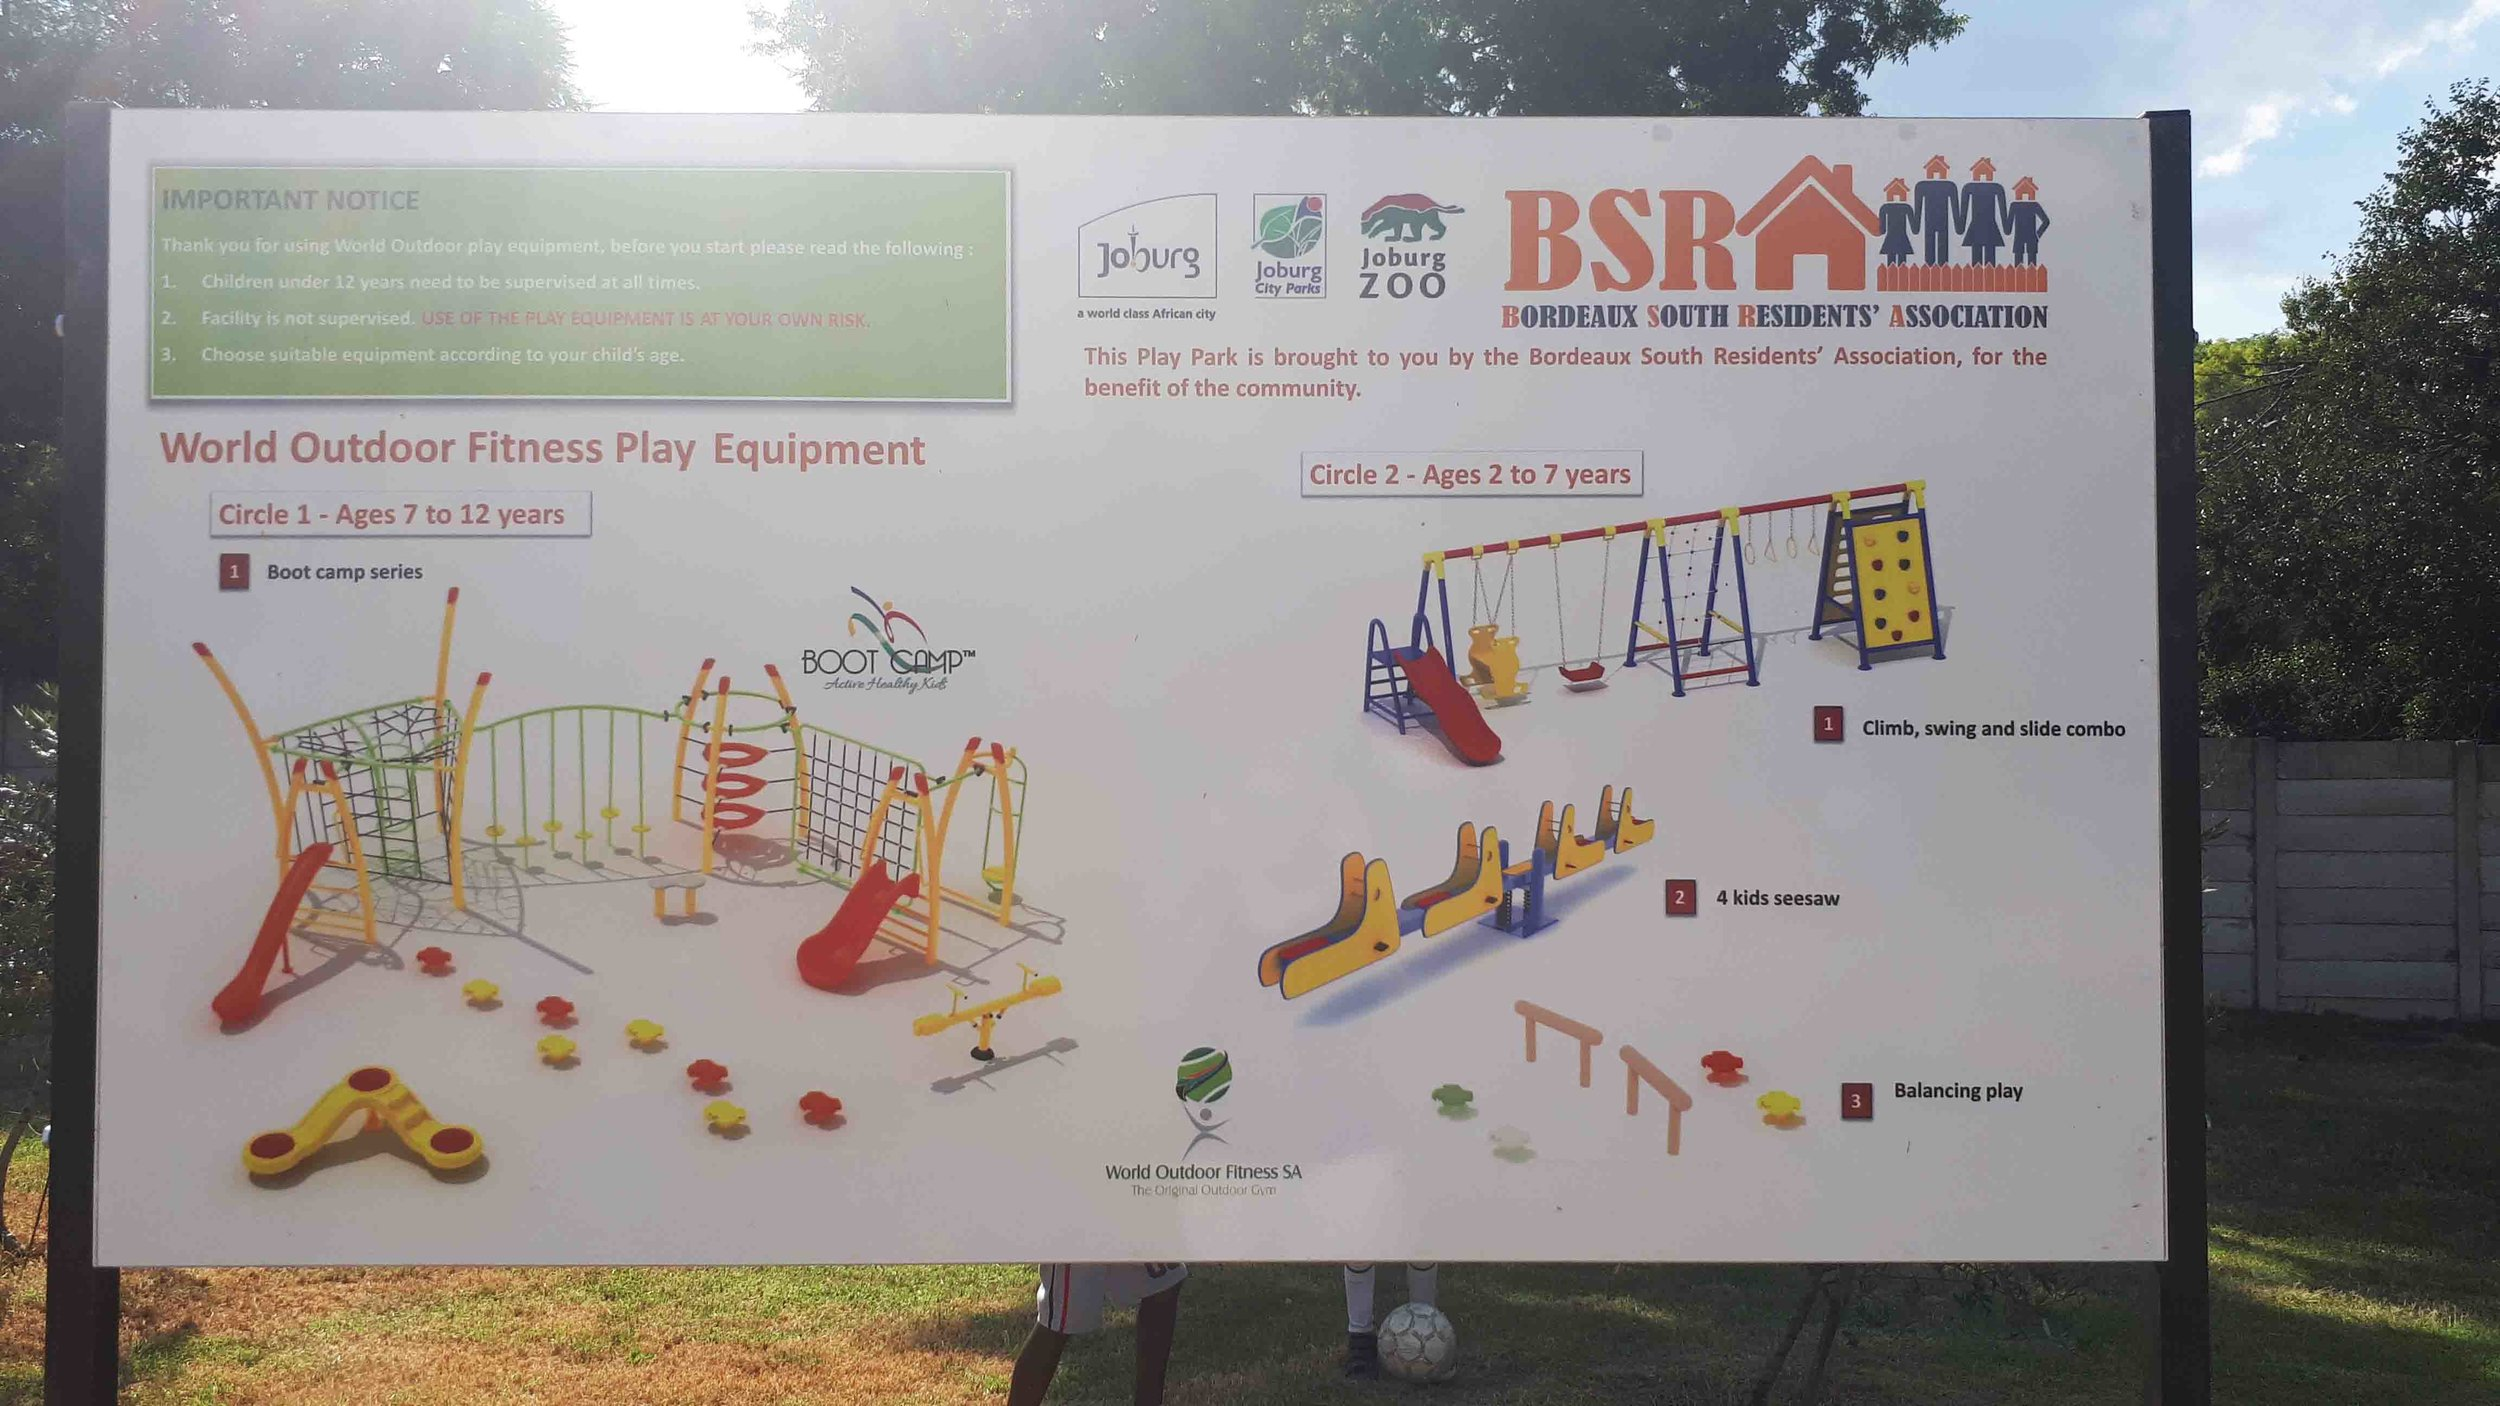 Signage indicates the appropriate ages for the play equipment